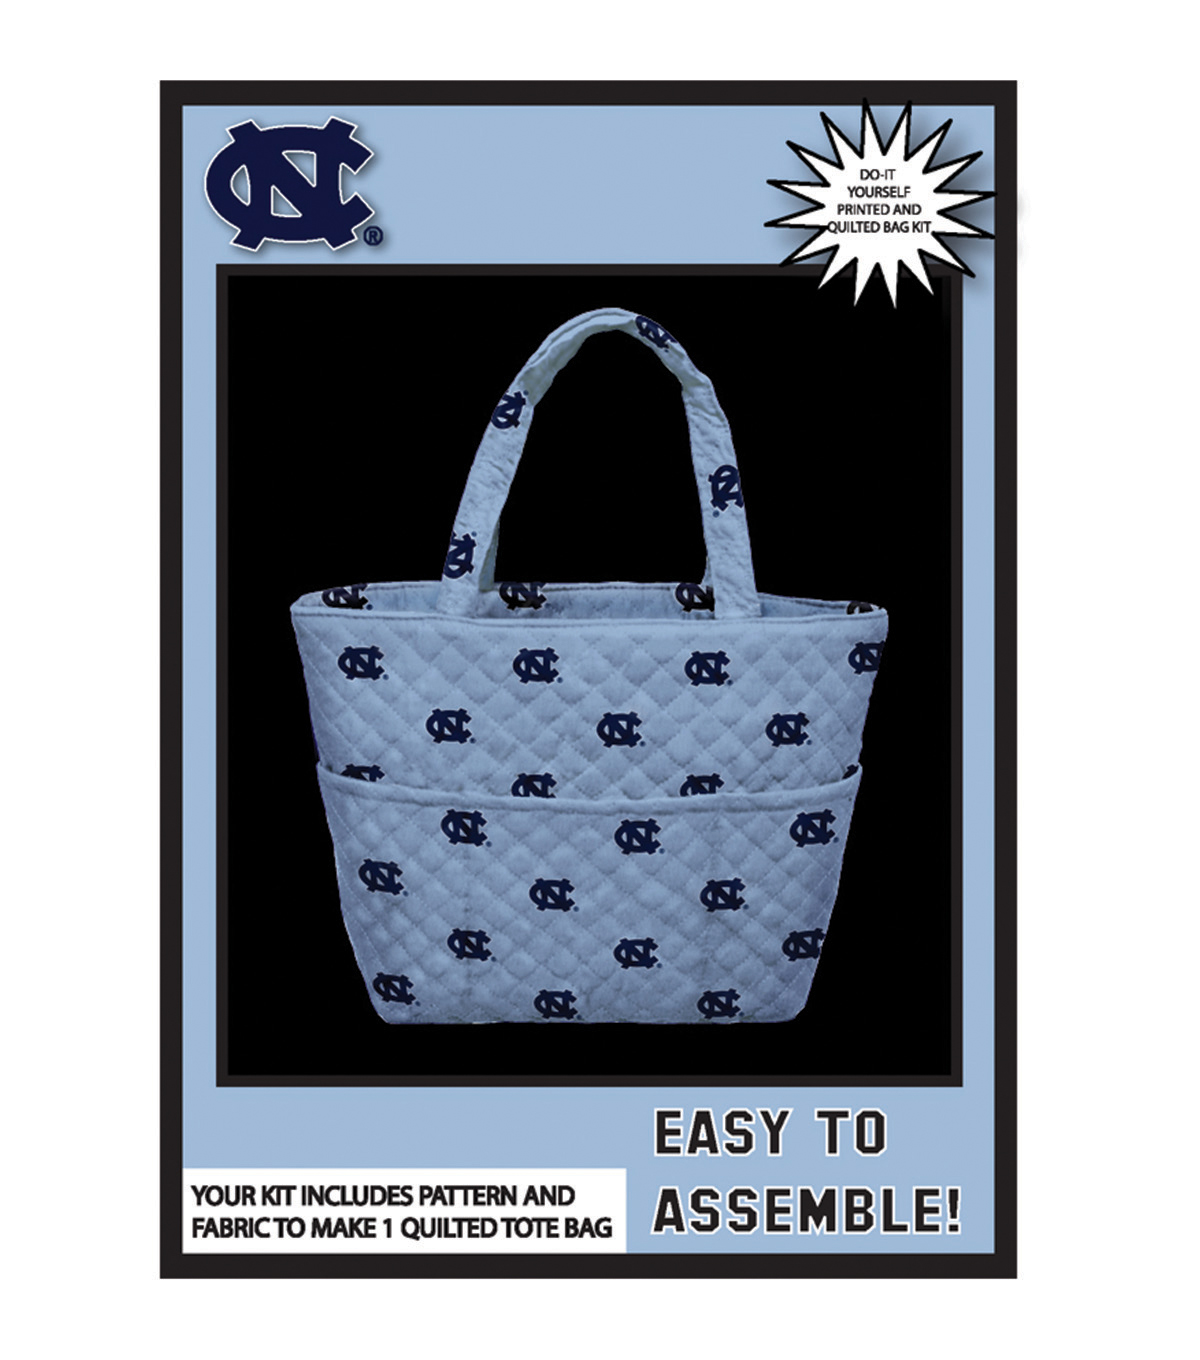 University of North Carolina Tarheels Tote Kit